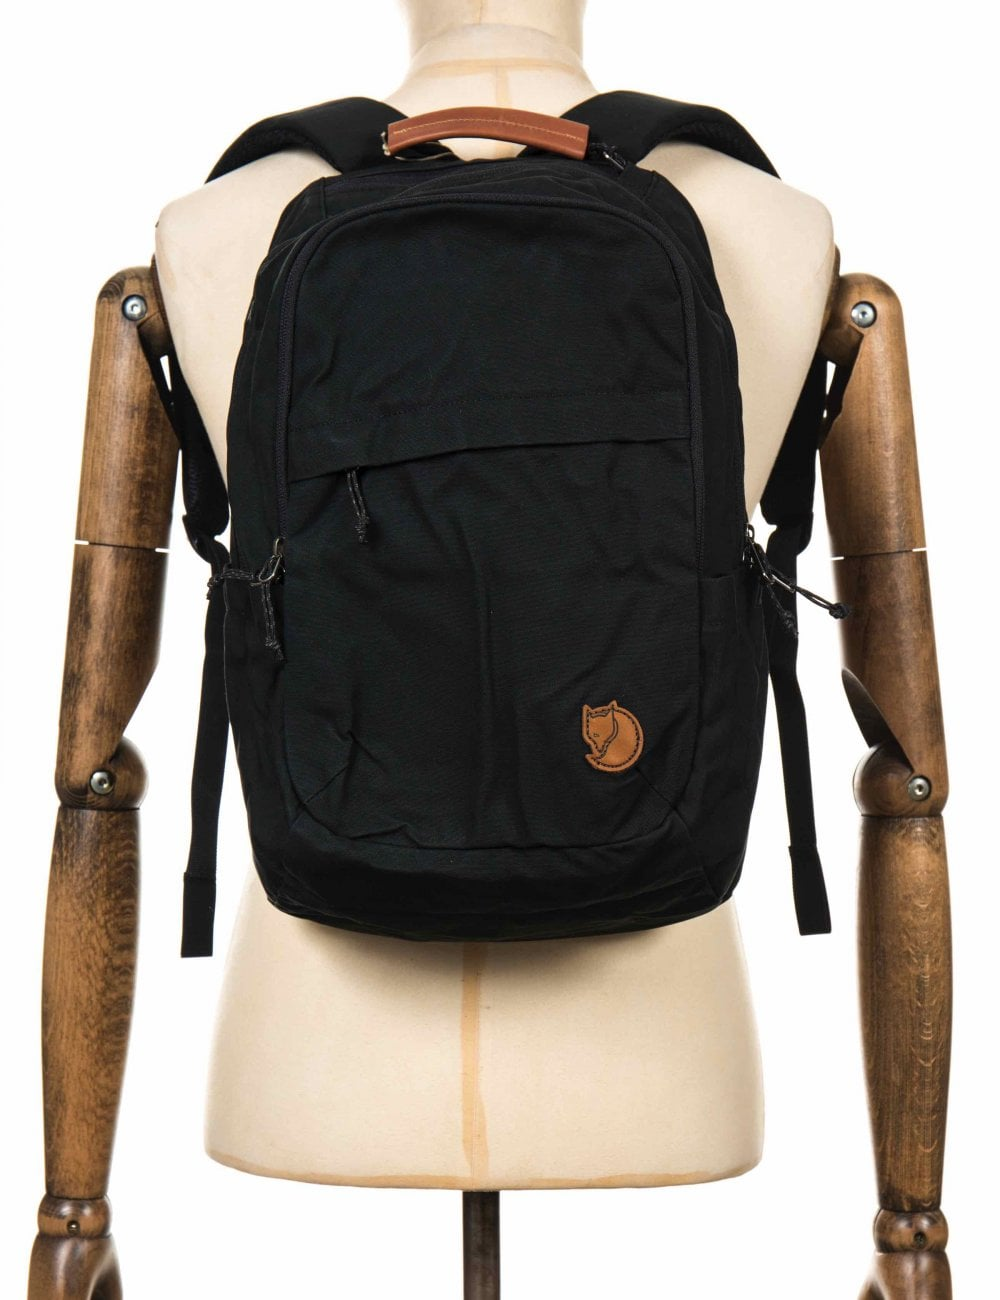 321738c52f1d Fjallraven Raven 20L Backpack - Black - Accessories from Fat Buddha ...